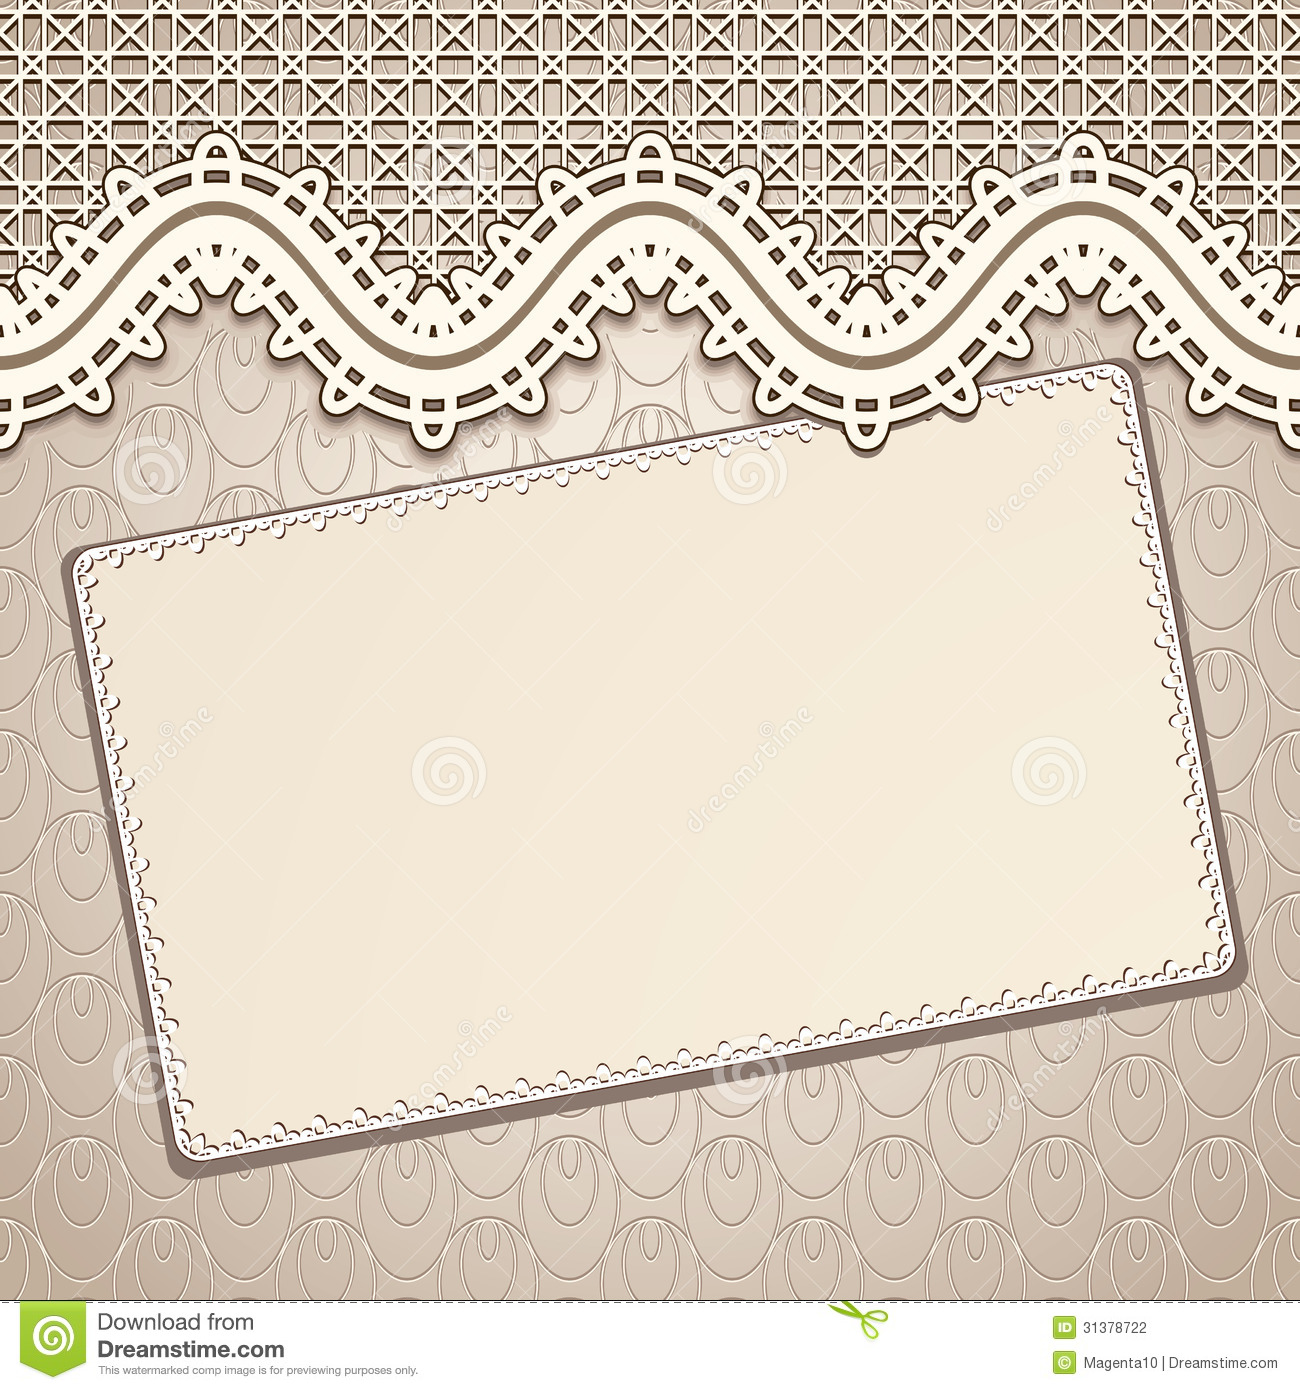 b6eefa1ee1 Vintage lace background stock vector. Illustration of cards - 31378722